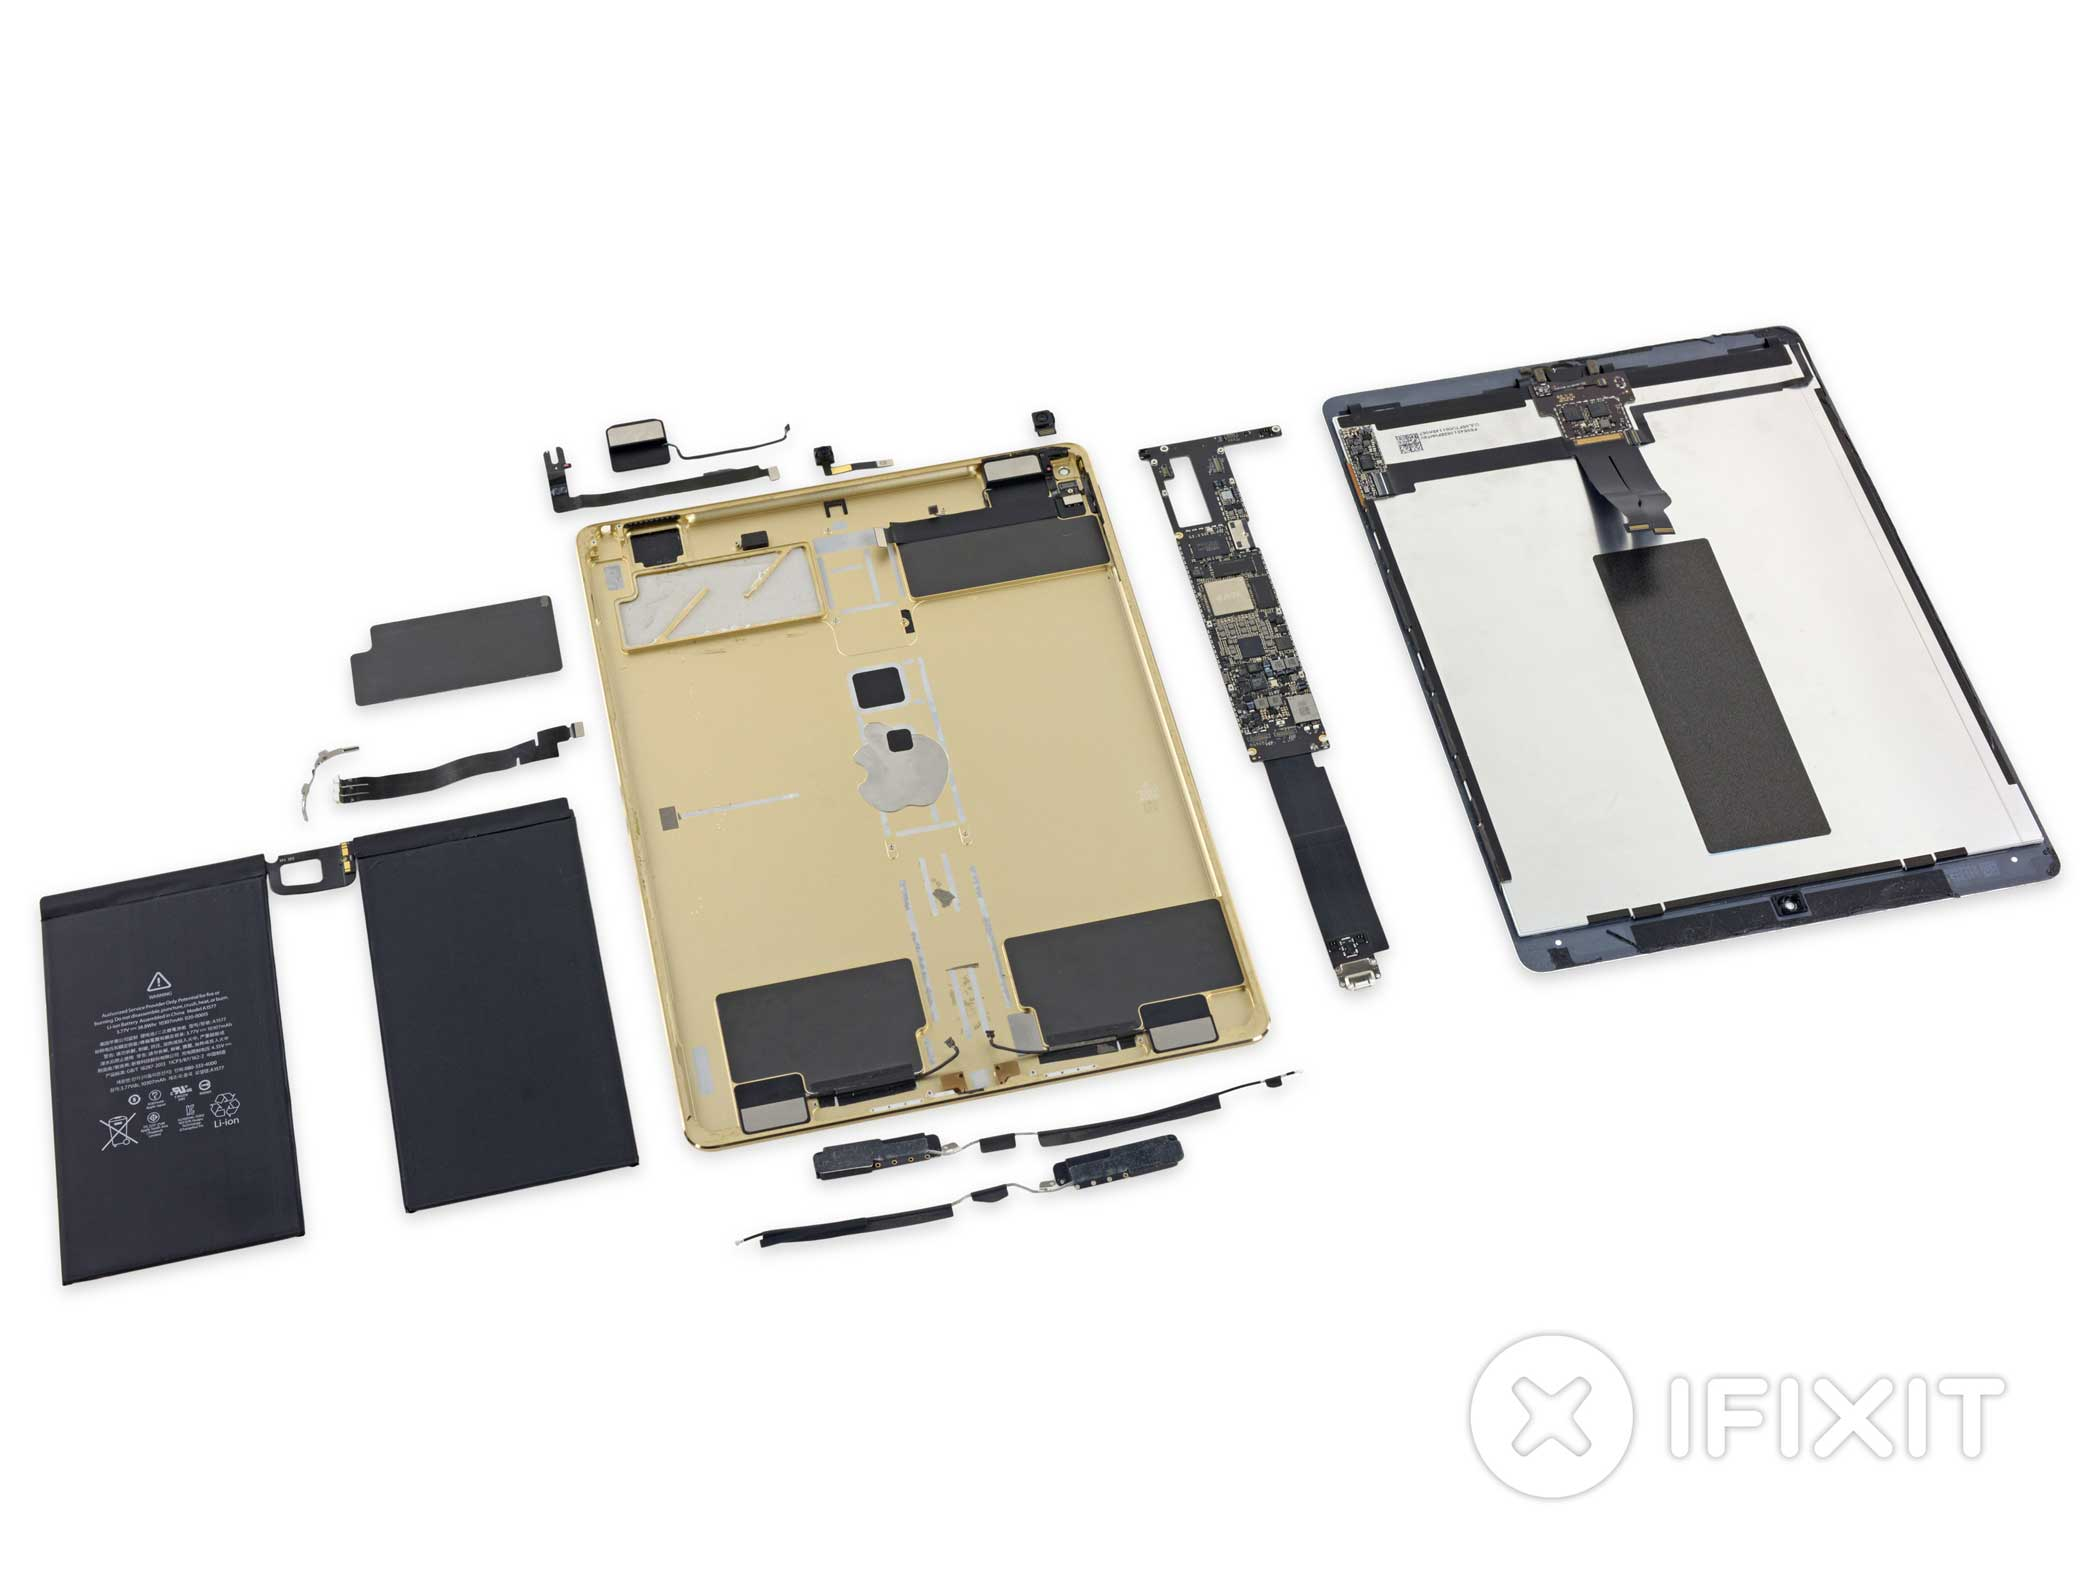 The iPad Pro is tough to repair. The iFixit team gave it a three out of 10 repairability score, since  the adhesive holding everything in place makes it hard to fix.